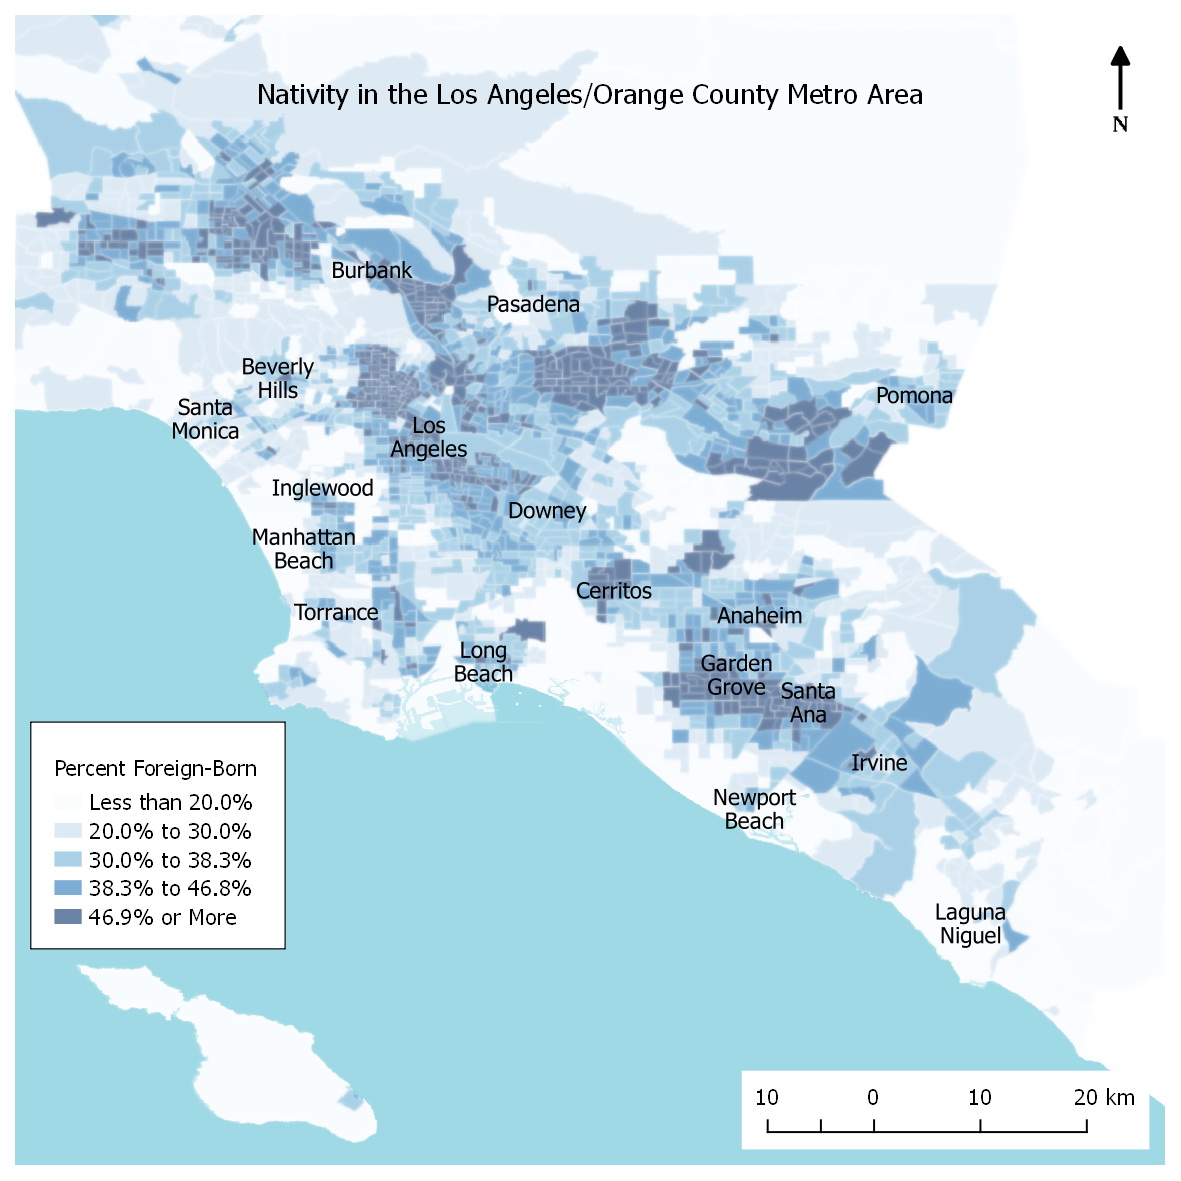 Percent of Population in the Orange County and Los Angeles Metro Area that are Foreign Born (2010-2014)